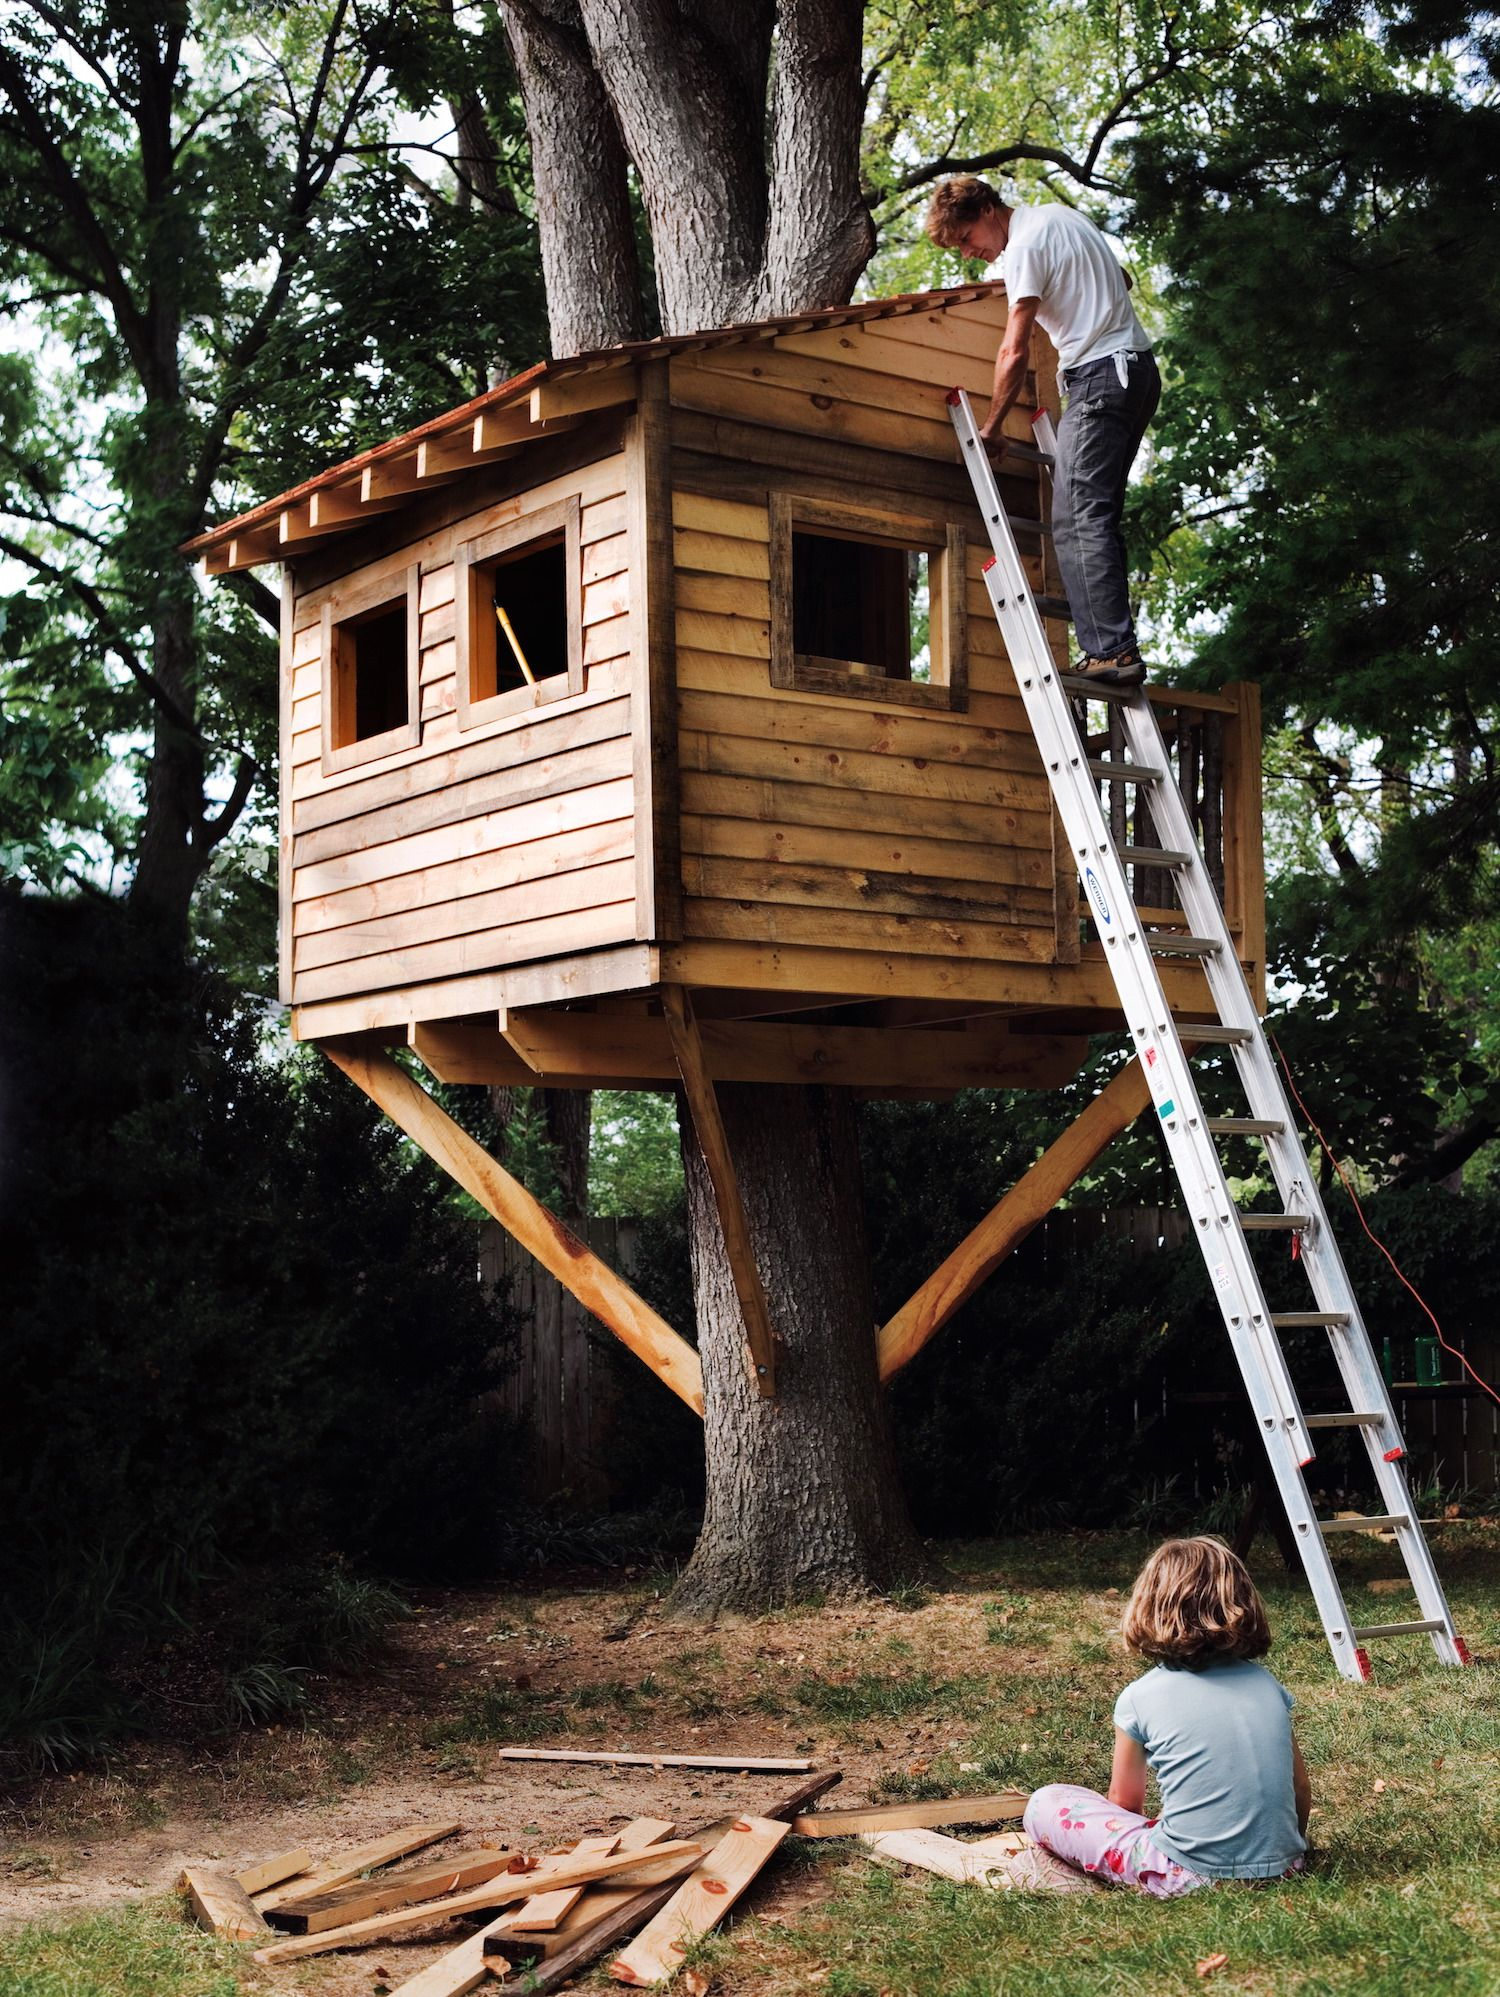 Design Single Tree Treehouse how to build a treehouse for your backyard diy tree house plans